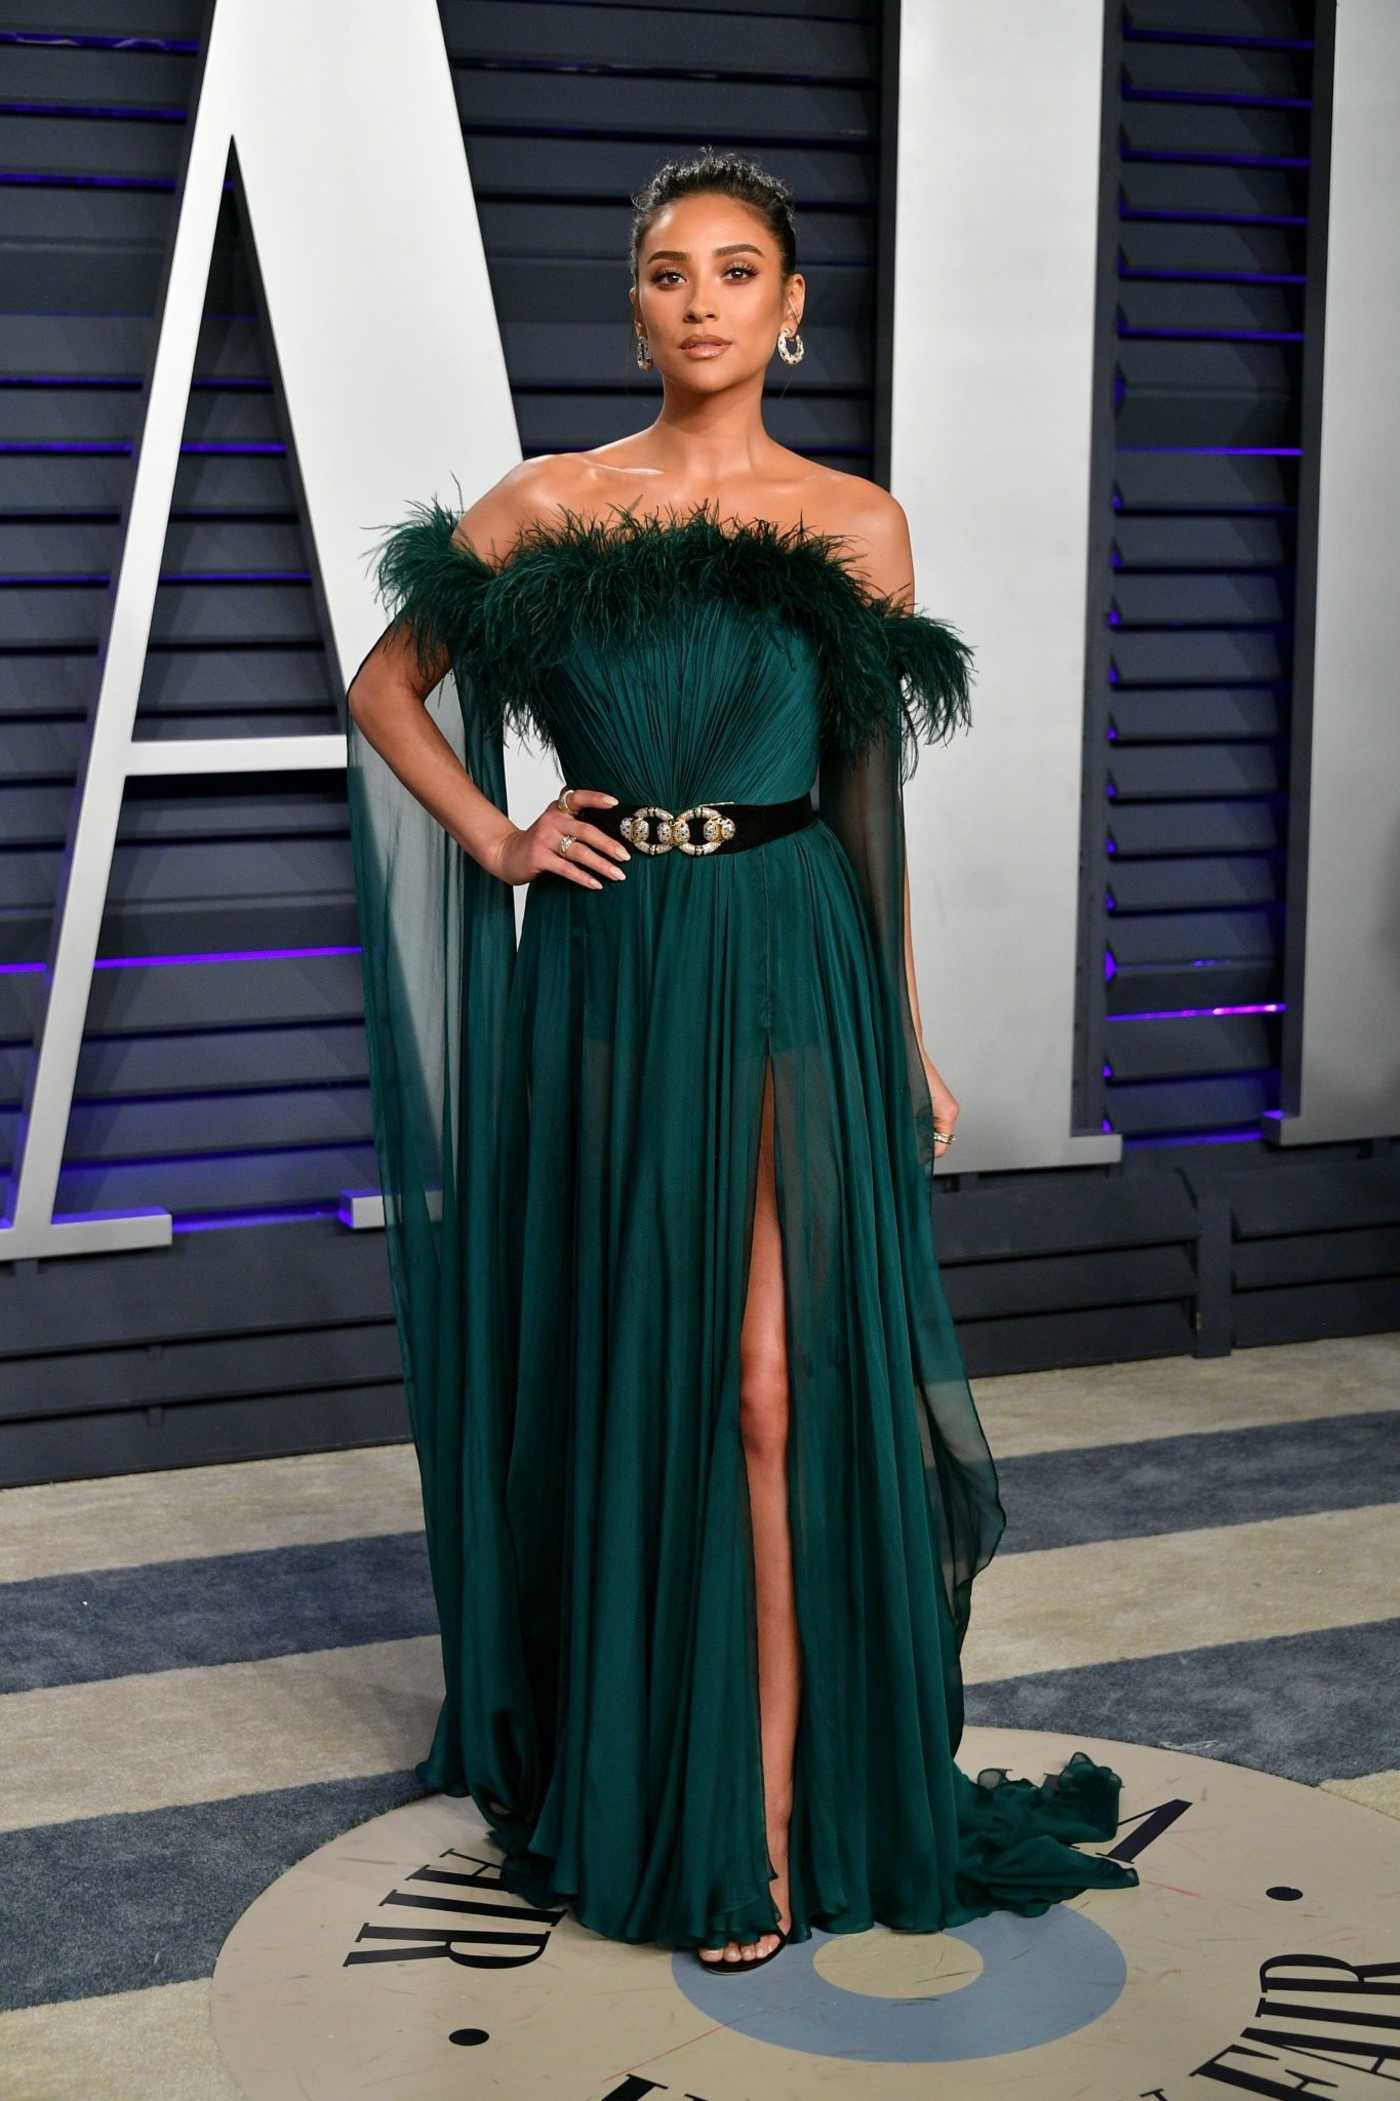 Shay Mitchell Attends 2019 Vanity Fair Oscar Party In Beverly Hills 02 24 2019 1 Fashionismo